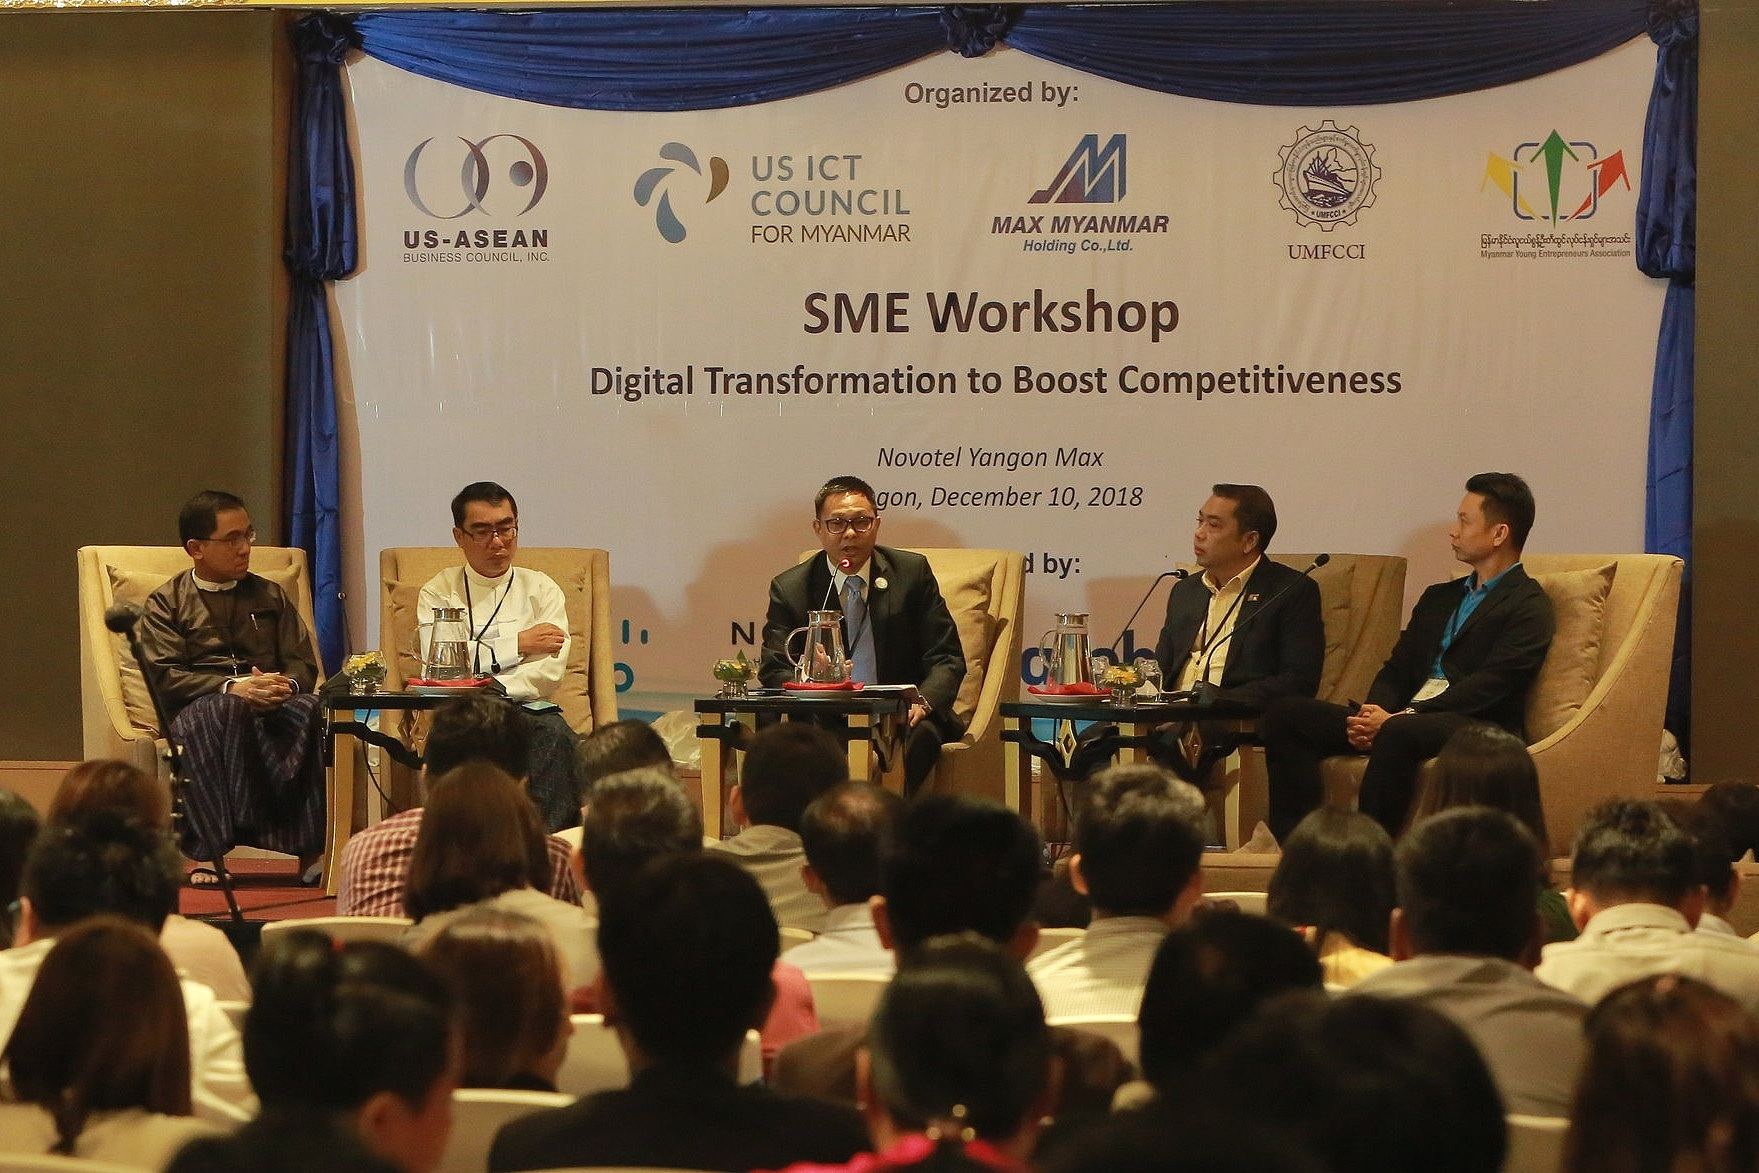 Max Myanmar CEO Chris Tun leads a panel discussion of industry leaders at an SME training workshop.